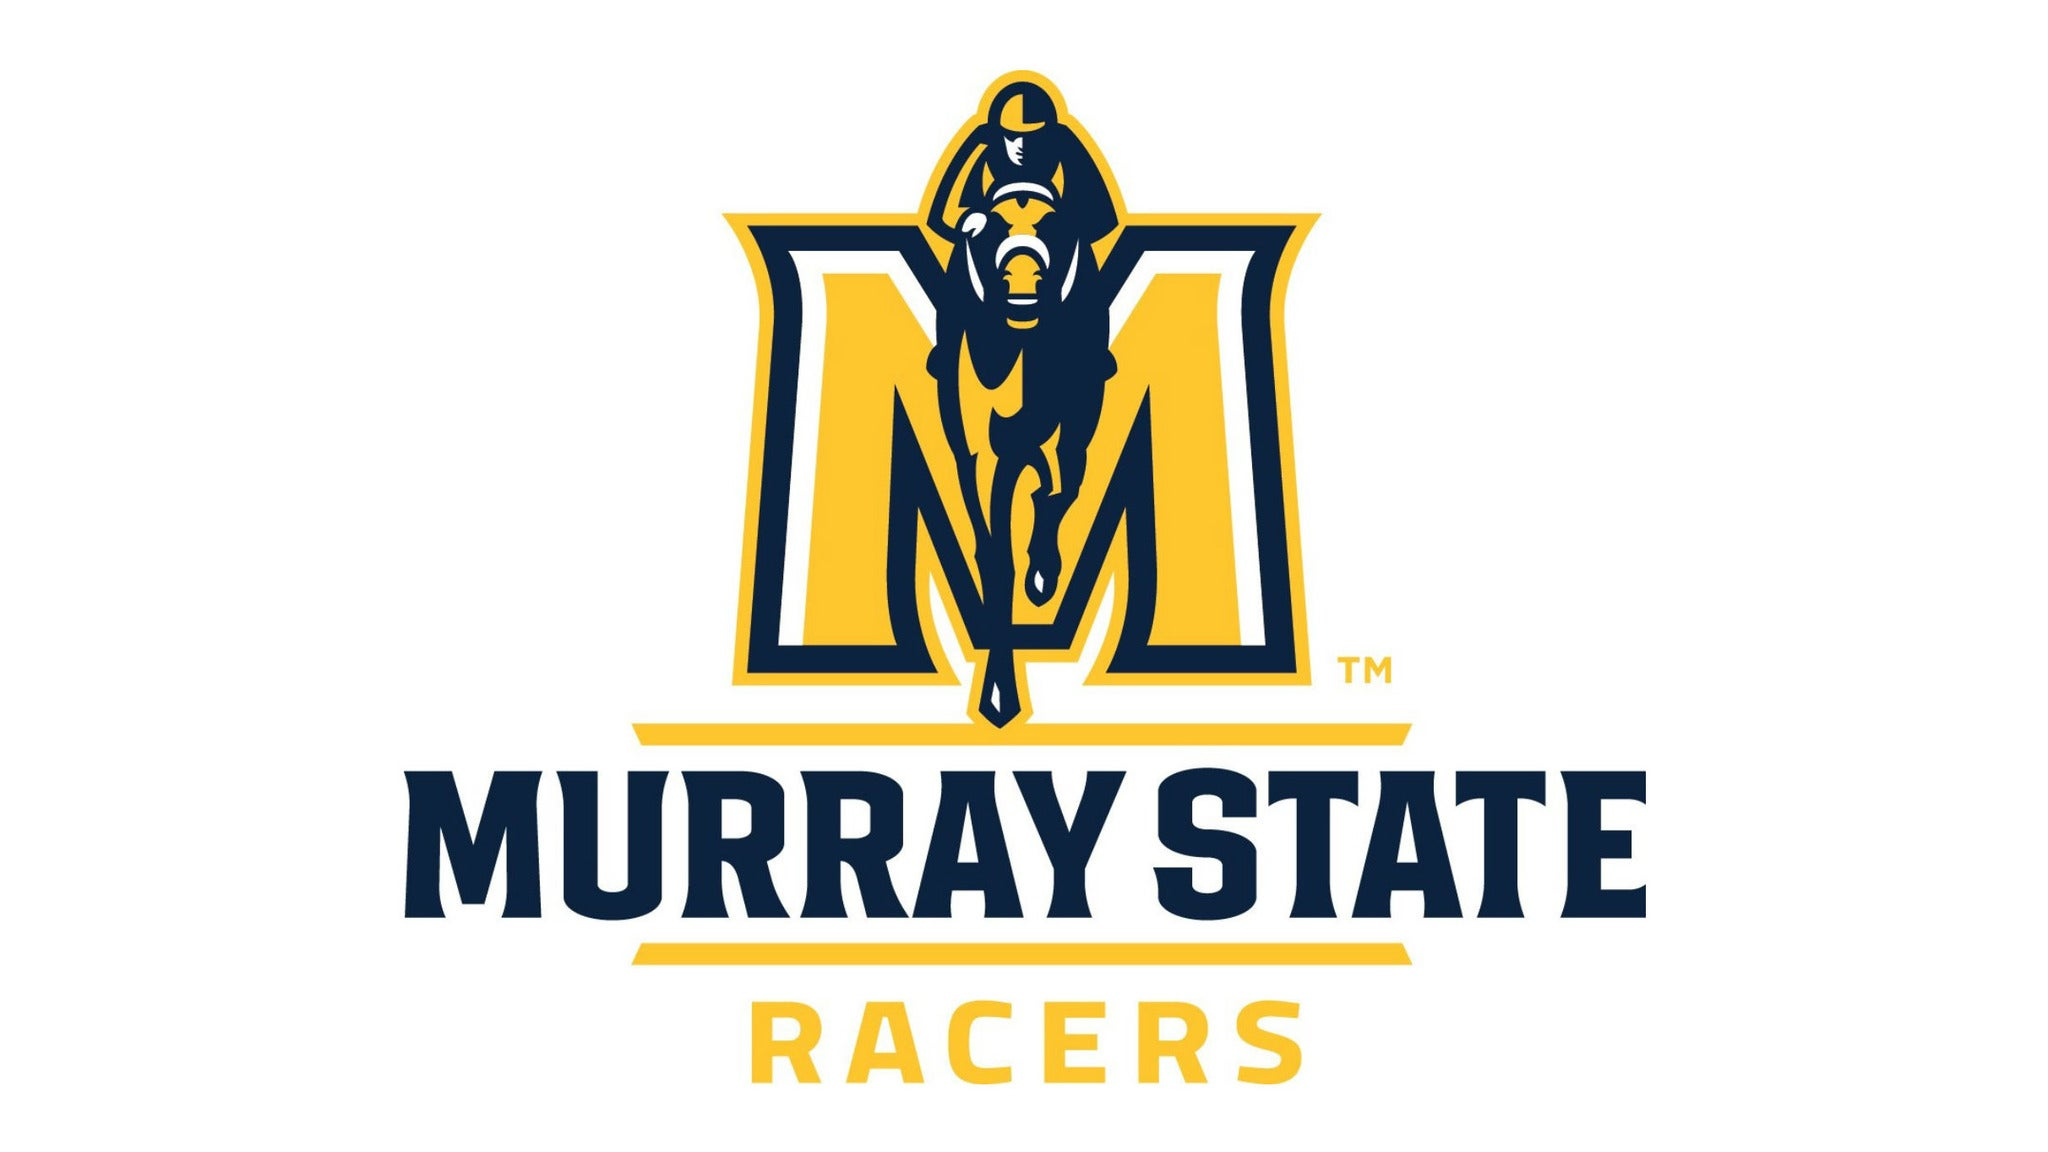 Murray State Racers College Football at Roy Stewart Stadium - Murray, KY 42071